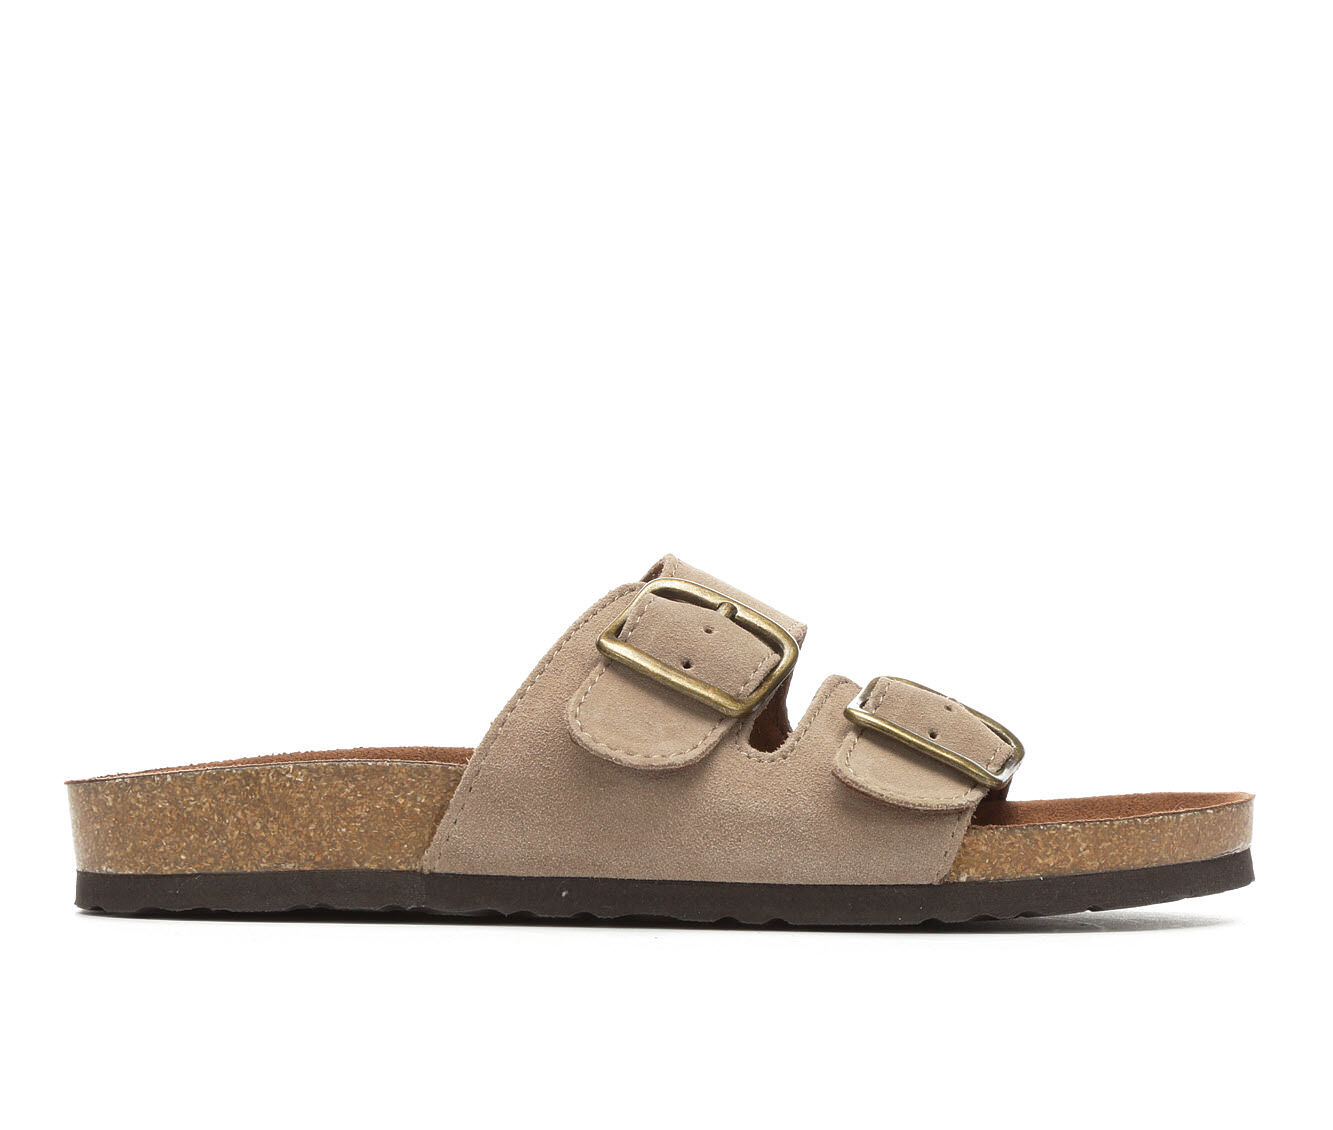 offer original Women's White Mountain Helga Footbed Sandals Lt. Taupe Suede